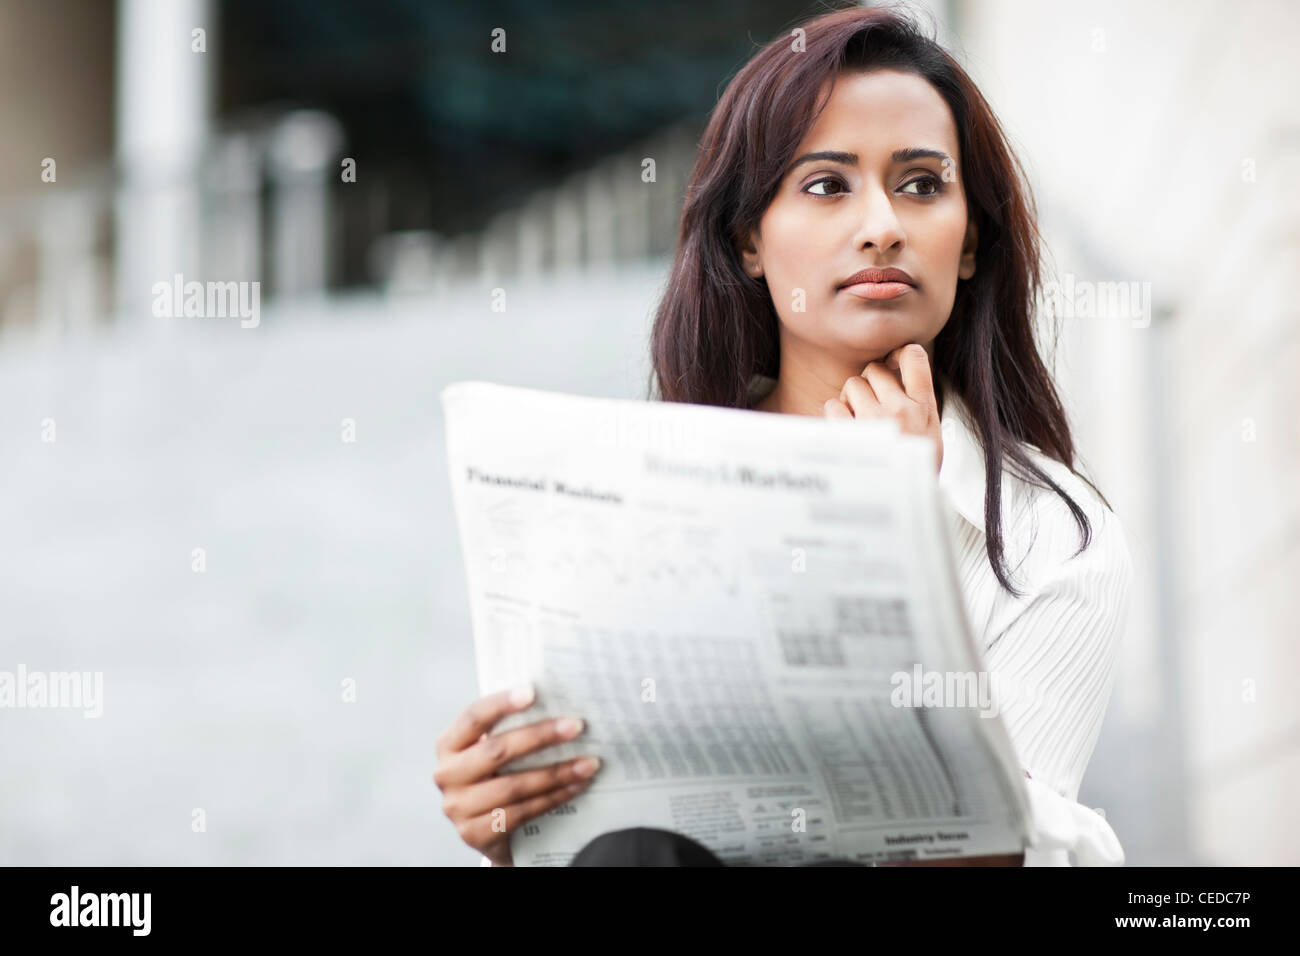 Indian businesswoman reading newspaper outdoors Banque D'Images